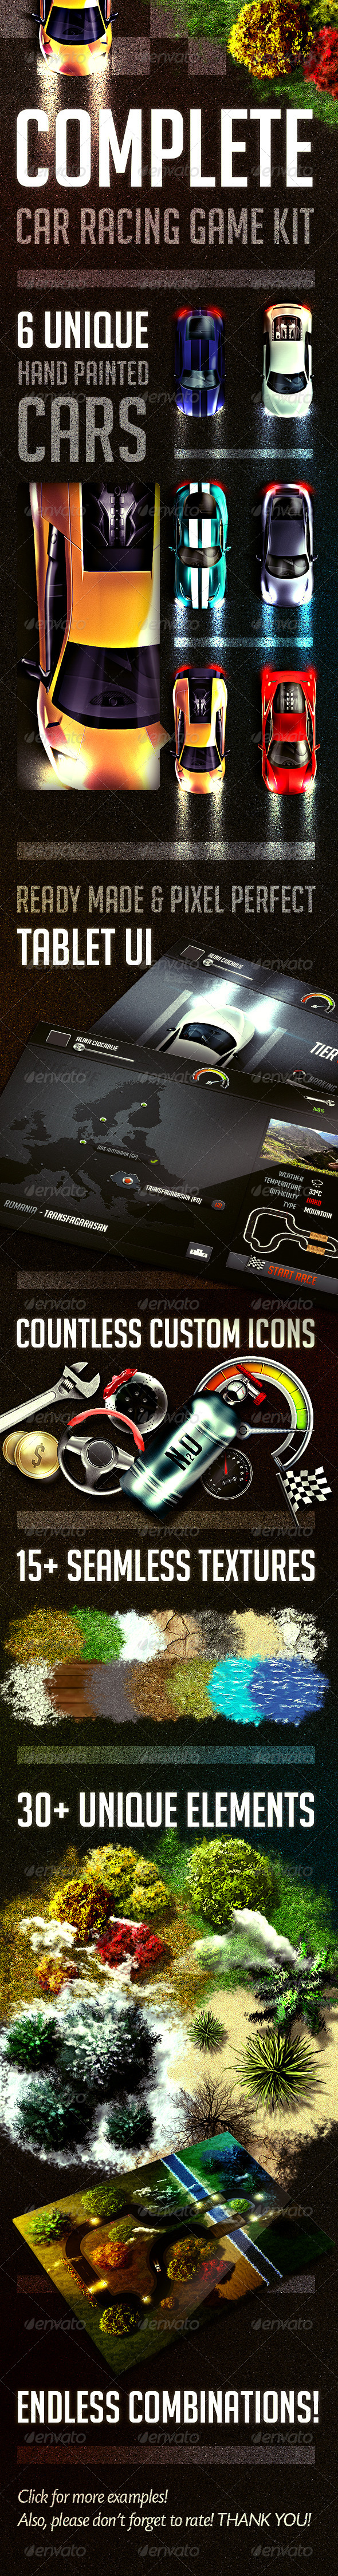 GraphicRiver Complete Car Racing Game Kit 7847502